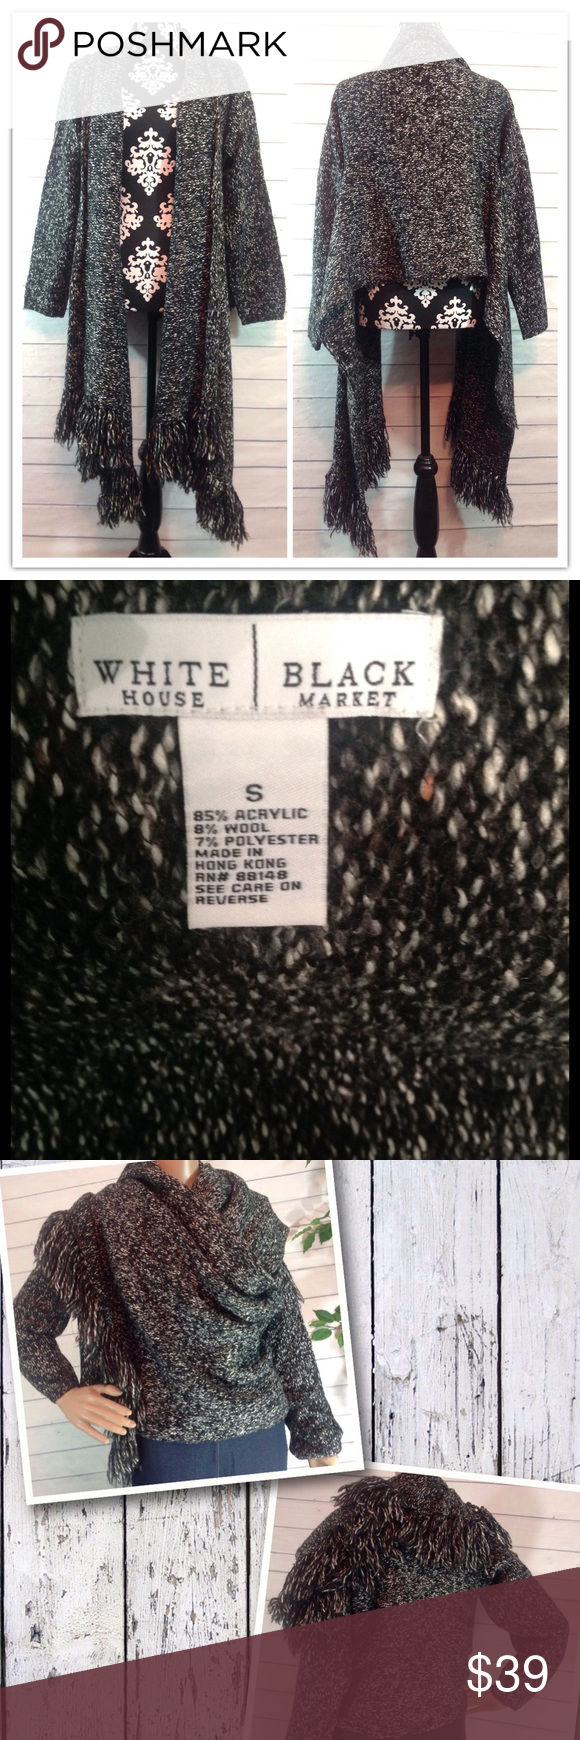 """WHBM  Black Fringe Wrap Cardigan Small White House Black Market chic Hi-Lo cardigan sweater. Front is long fringed scarf style for wrapping or tying. Long sleeves. Back at waist length.  Small.  Bust measures 22"""" across. Armpit to longest fringe 39"""".  Armpit to waist hem 12"""".  Excellent condition.  See pic for fabric content.                                    🔹Please ask all questions before you purchase! I'm happy to help! 🔹Sorry, no trades or holds 🔹Please, no lowball offers 🔹Please…"""